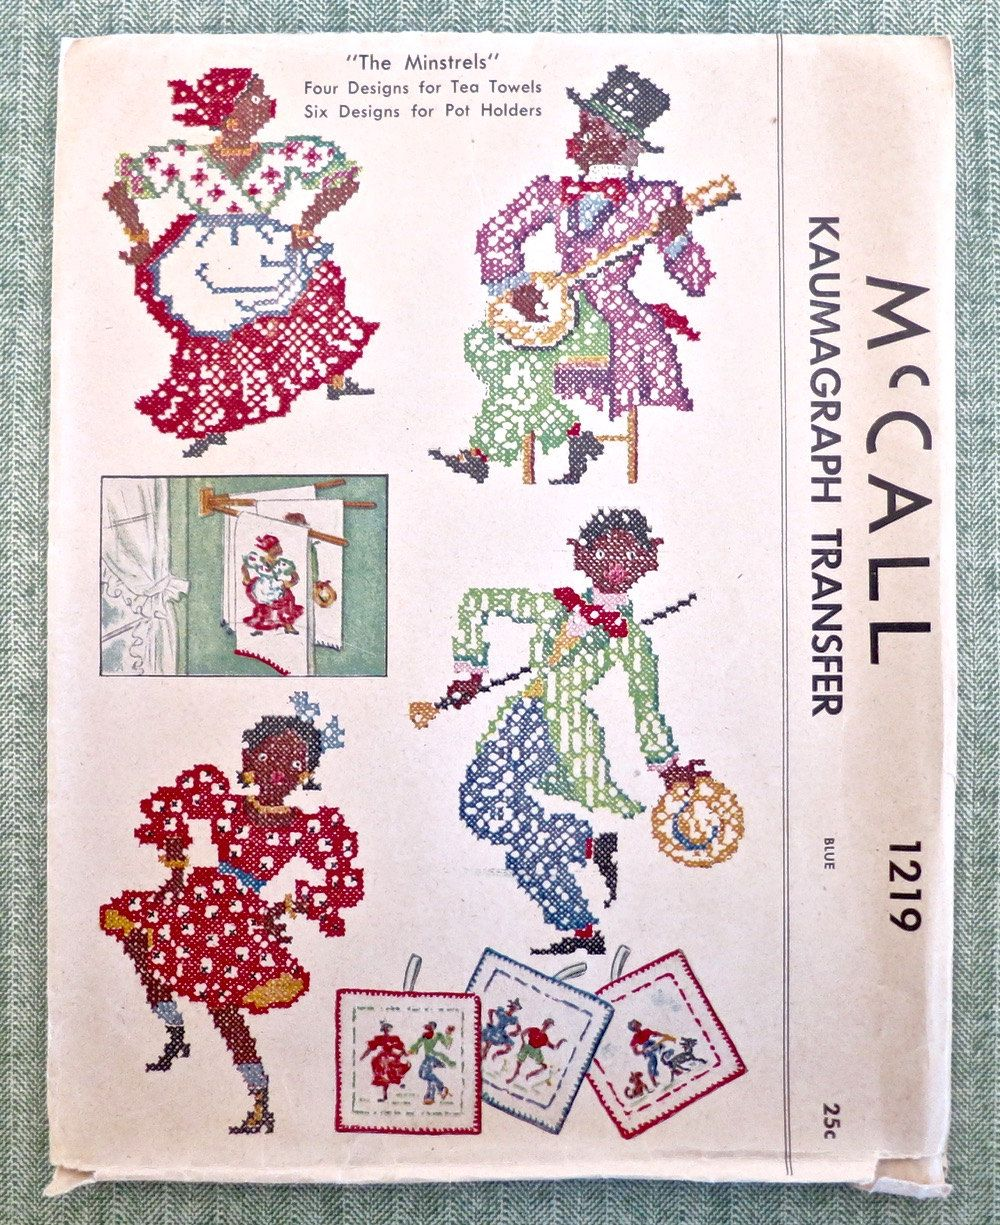 Vintage 1940s Kaumagraph Transfers for Potholders and Towels - McCall 1219 - ONLY TOWEL TRANSFERS by Fragolina on Etsy